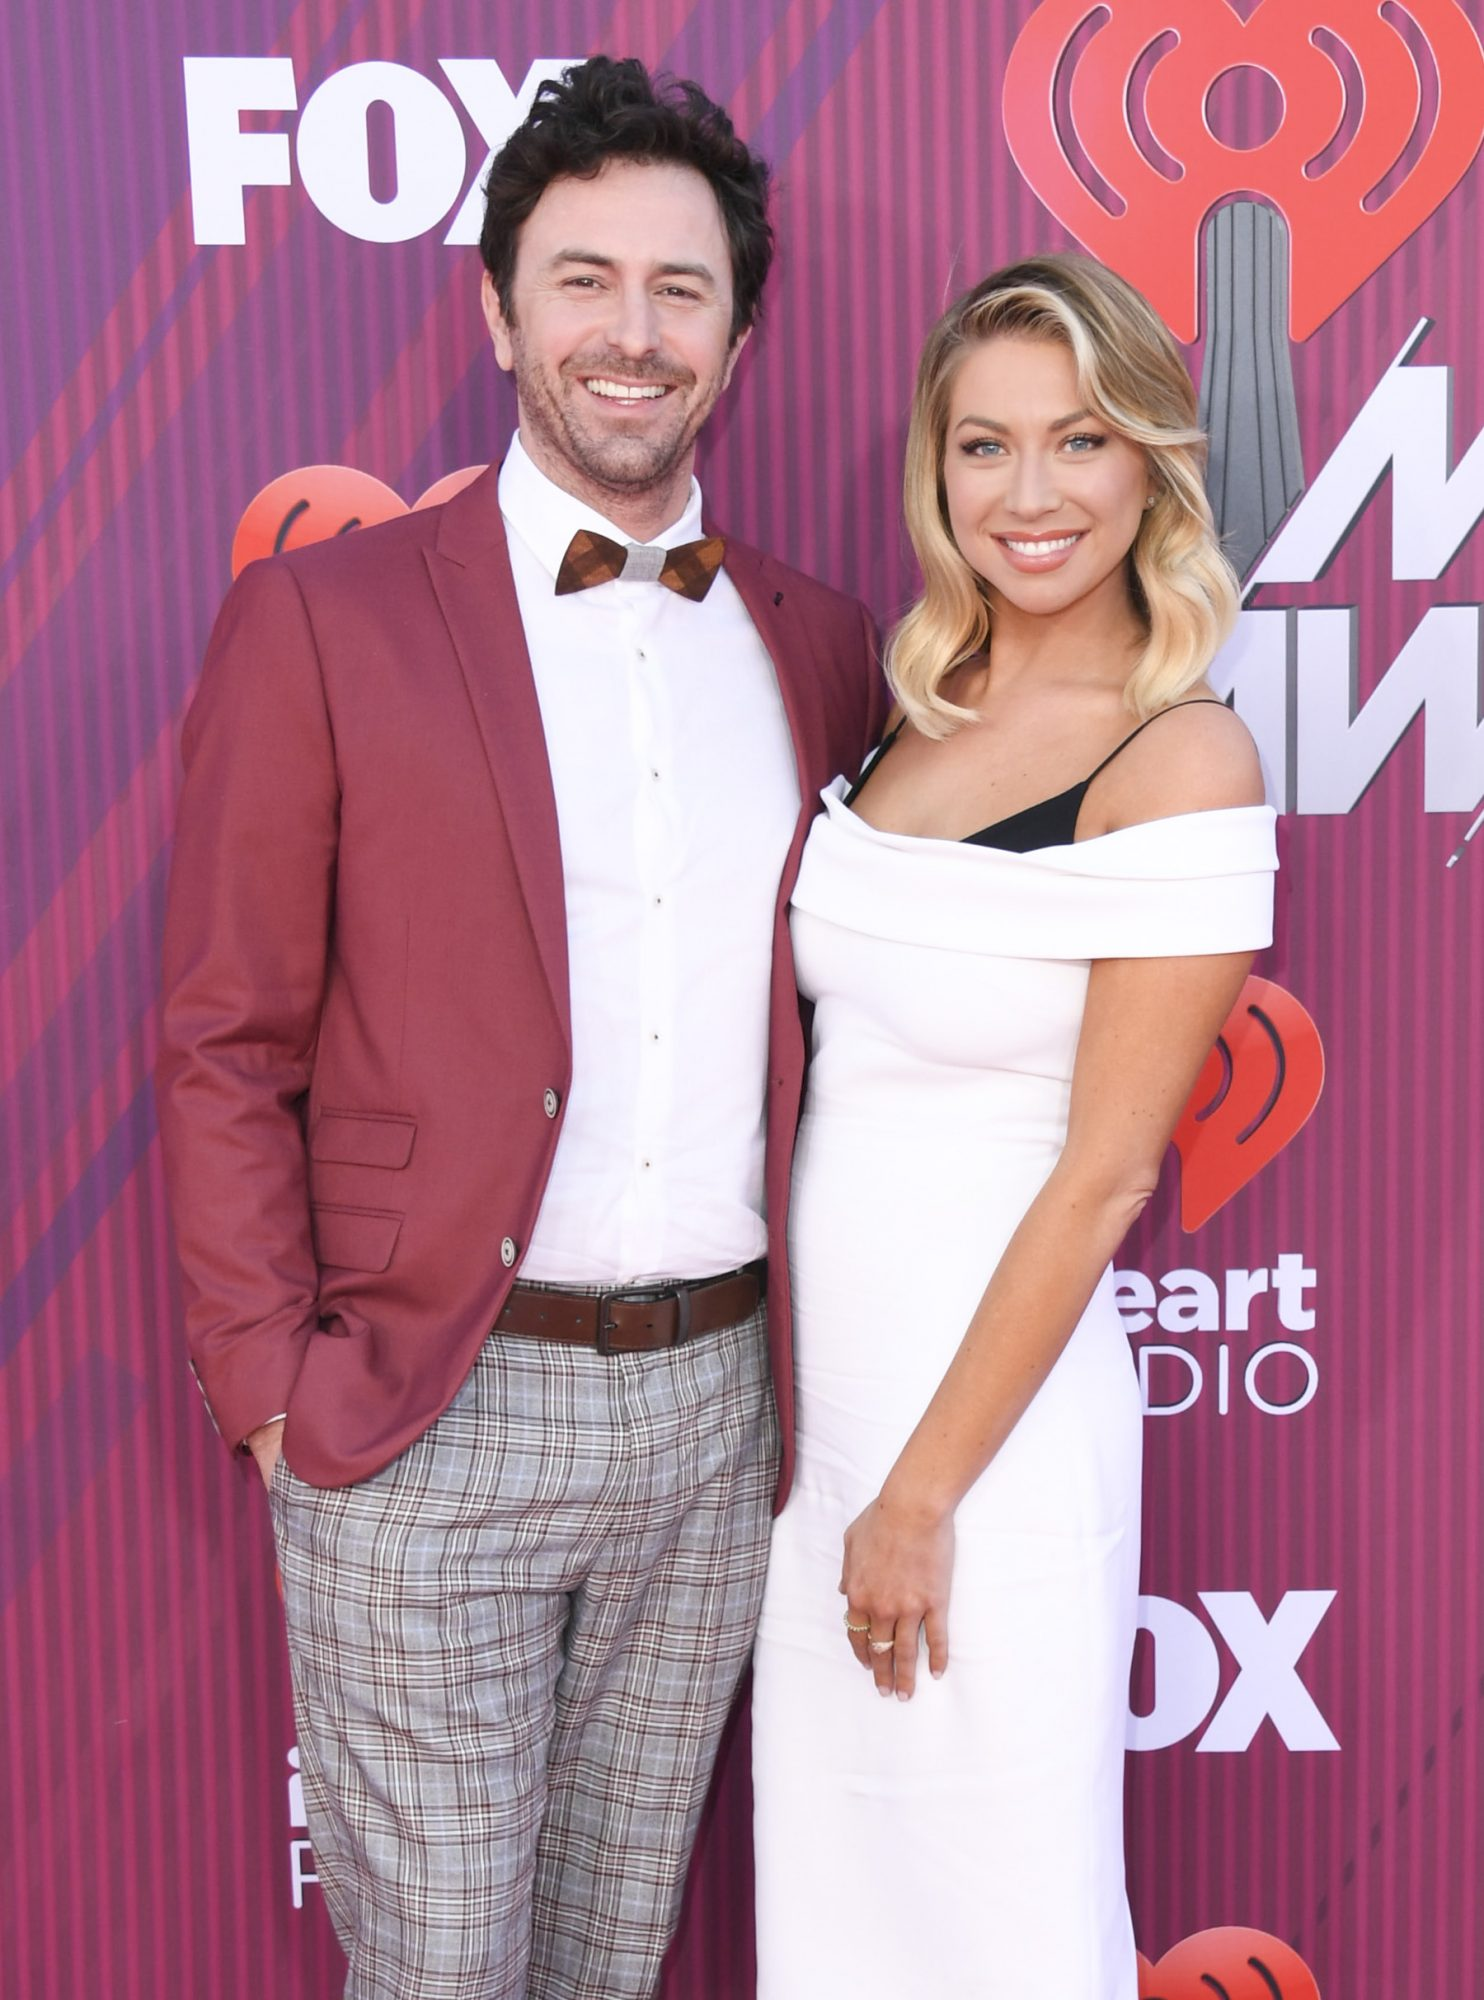 LOS ANGELES, CALIFORNIA - MARCH 14: Beau Clark and Stassi Schroeder arrive at the 2019 iHeartRadio Music Awards which broadcasted live on FOX at Microsoft Theater on March 14, 2019 in Los Angeles, California. (Photo by Jon Kopaloff/FilmMagic)